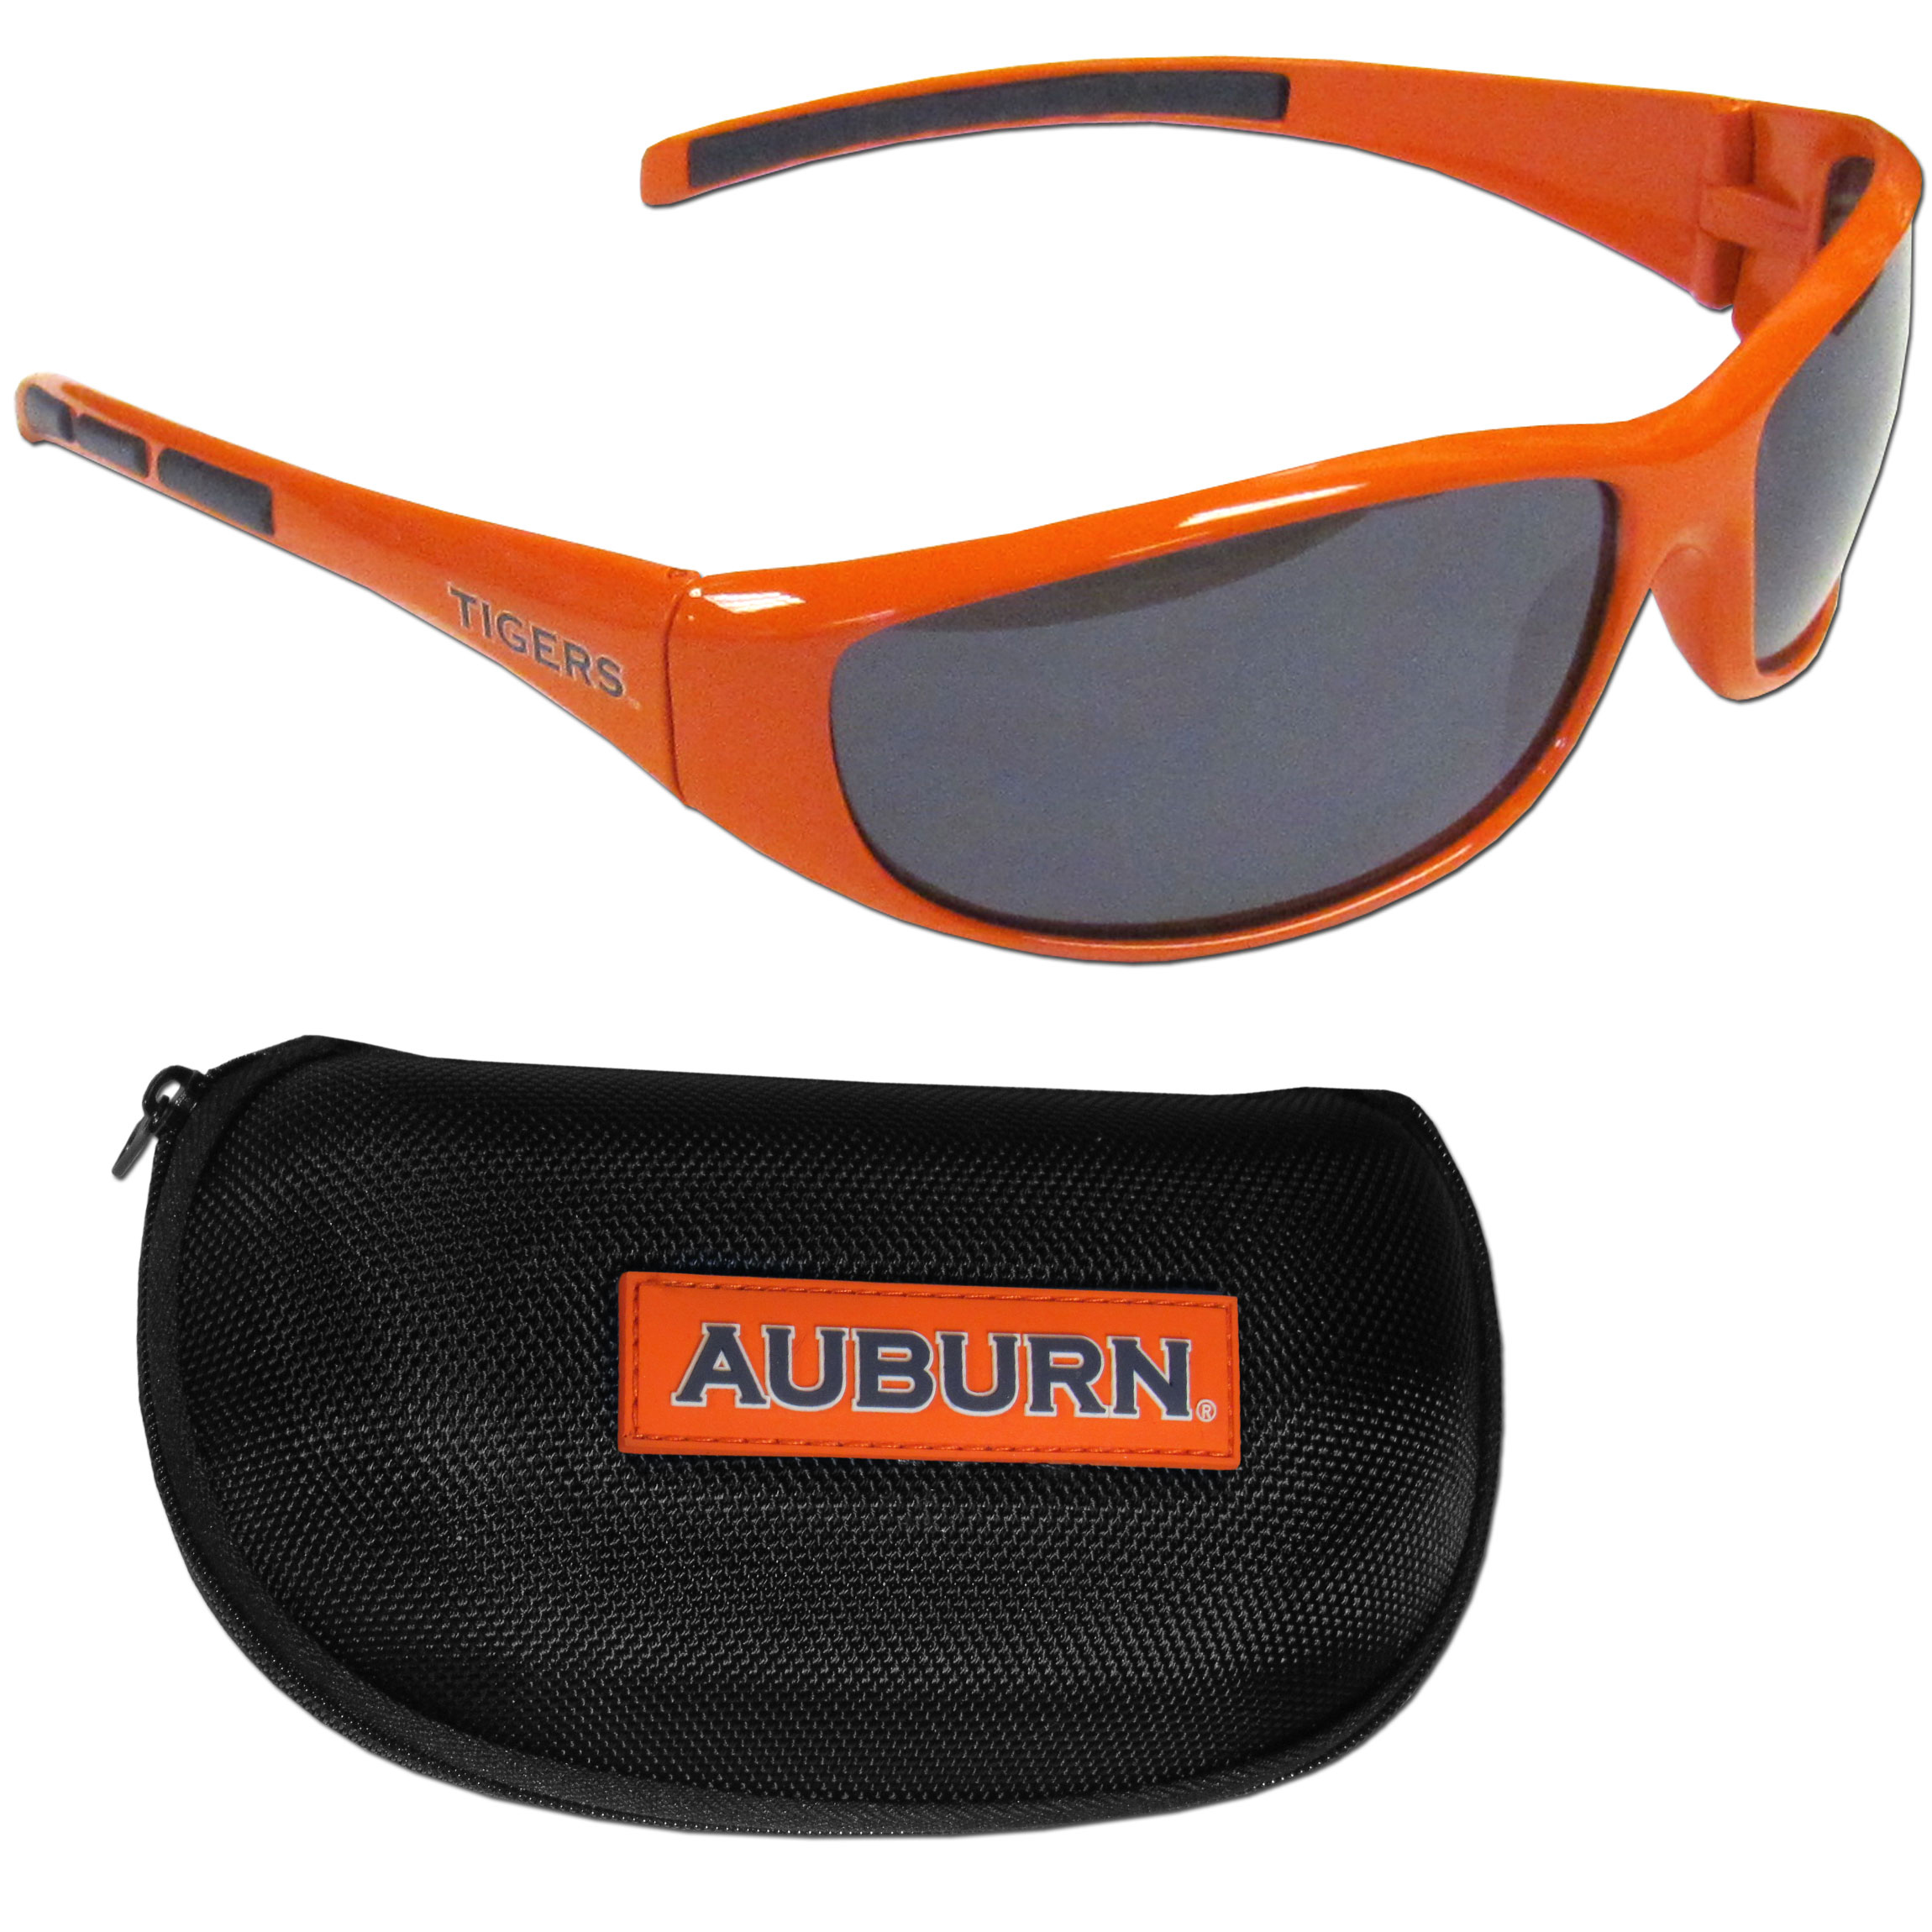 Auburn Tigers Wrap Sunglass and Case Set - This great set includes a high quality pair of Auburn Tigers wrap sunglasses and hard carrying case.